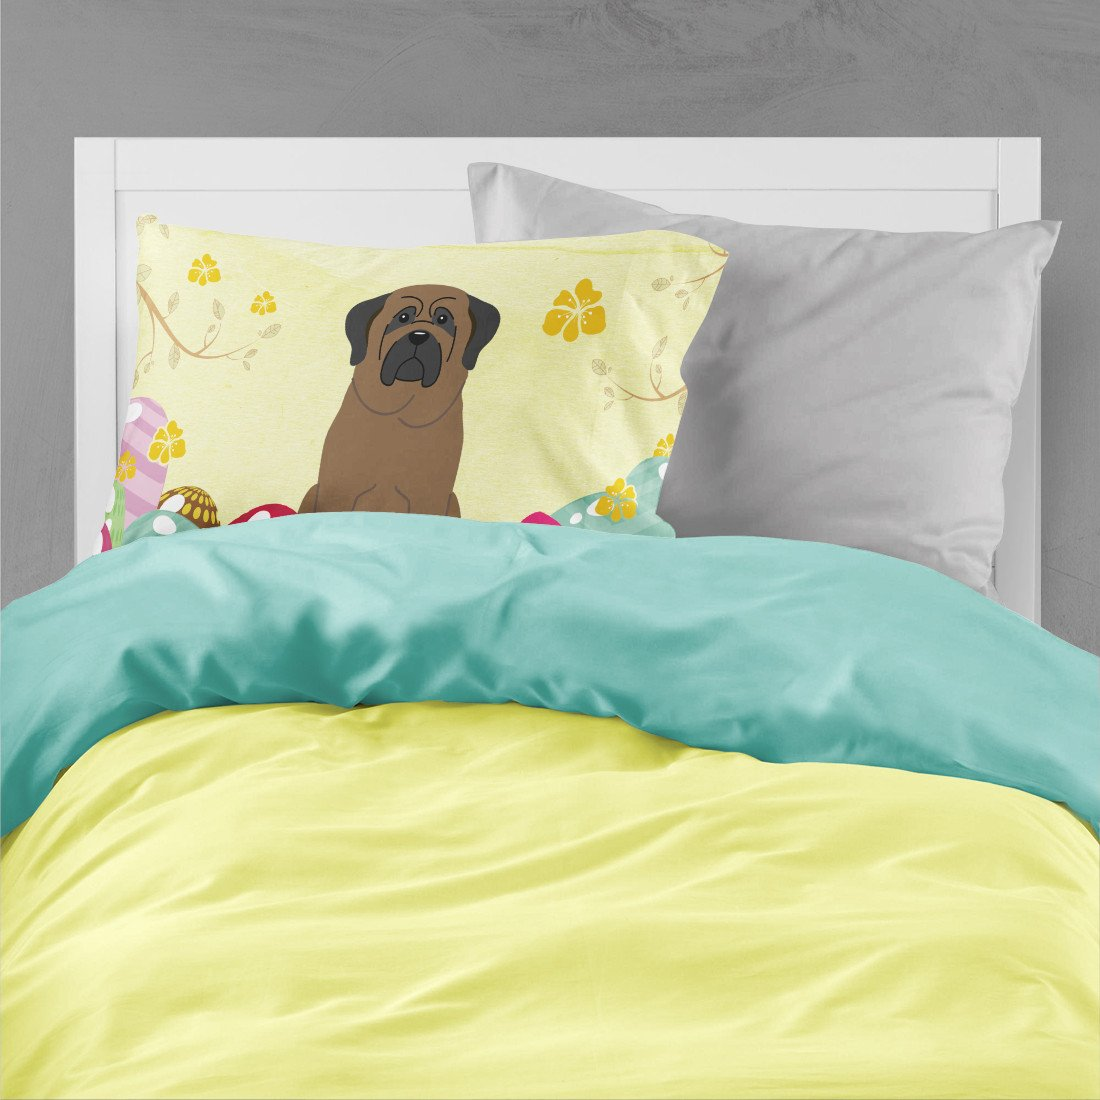 Easter Eggs Bullmastiff Fabric Standard Pillowcase BB6084PILLOWCASE by Caroline's Treasures